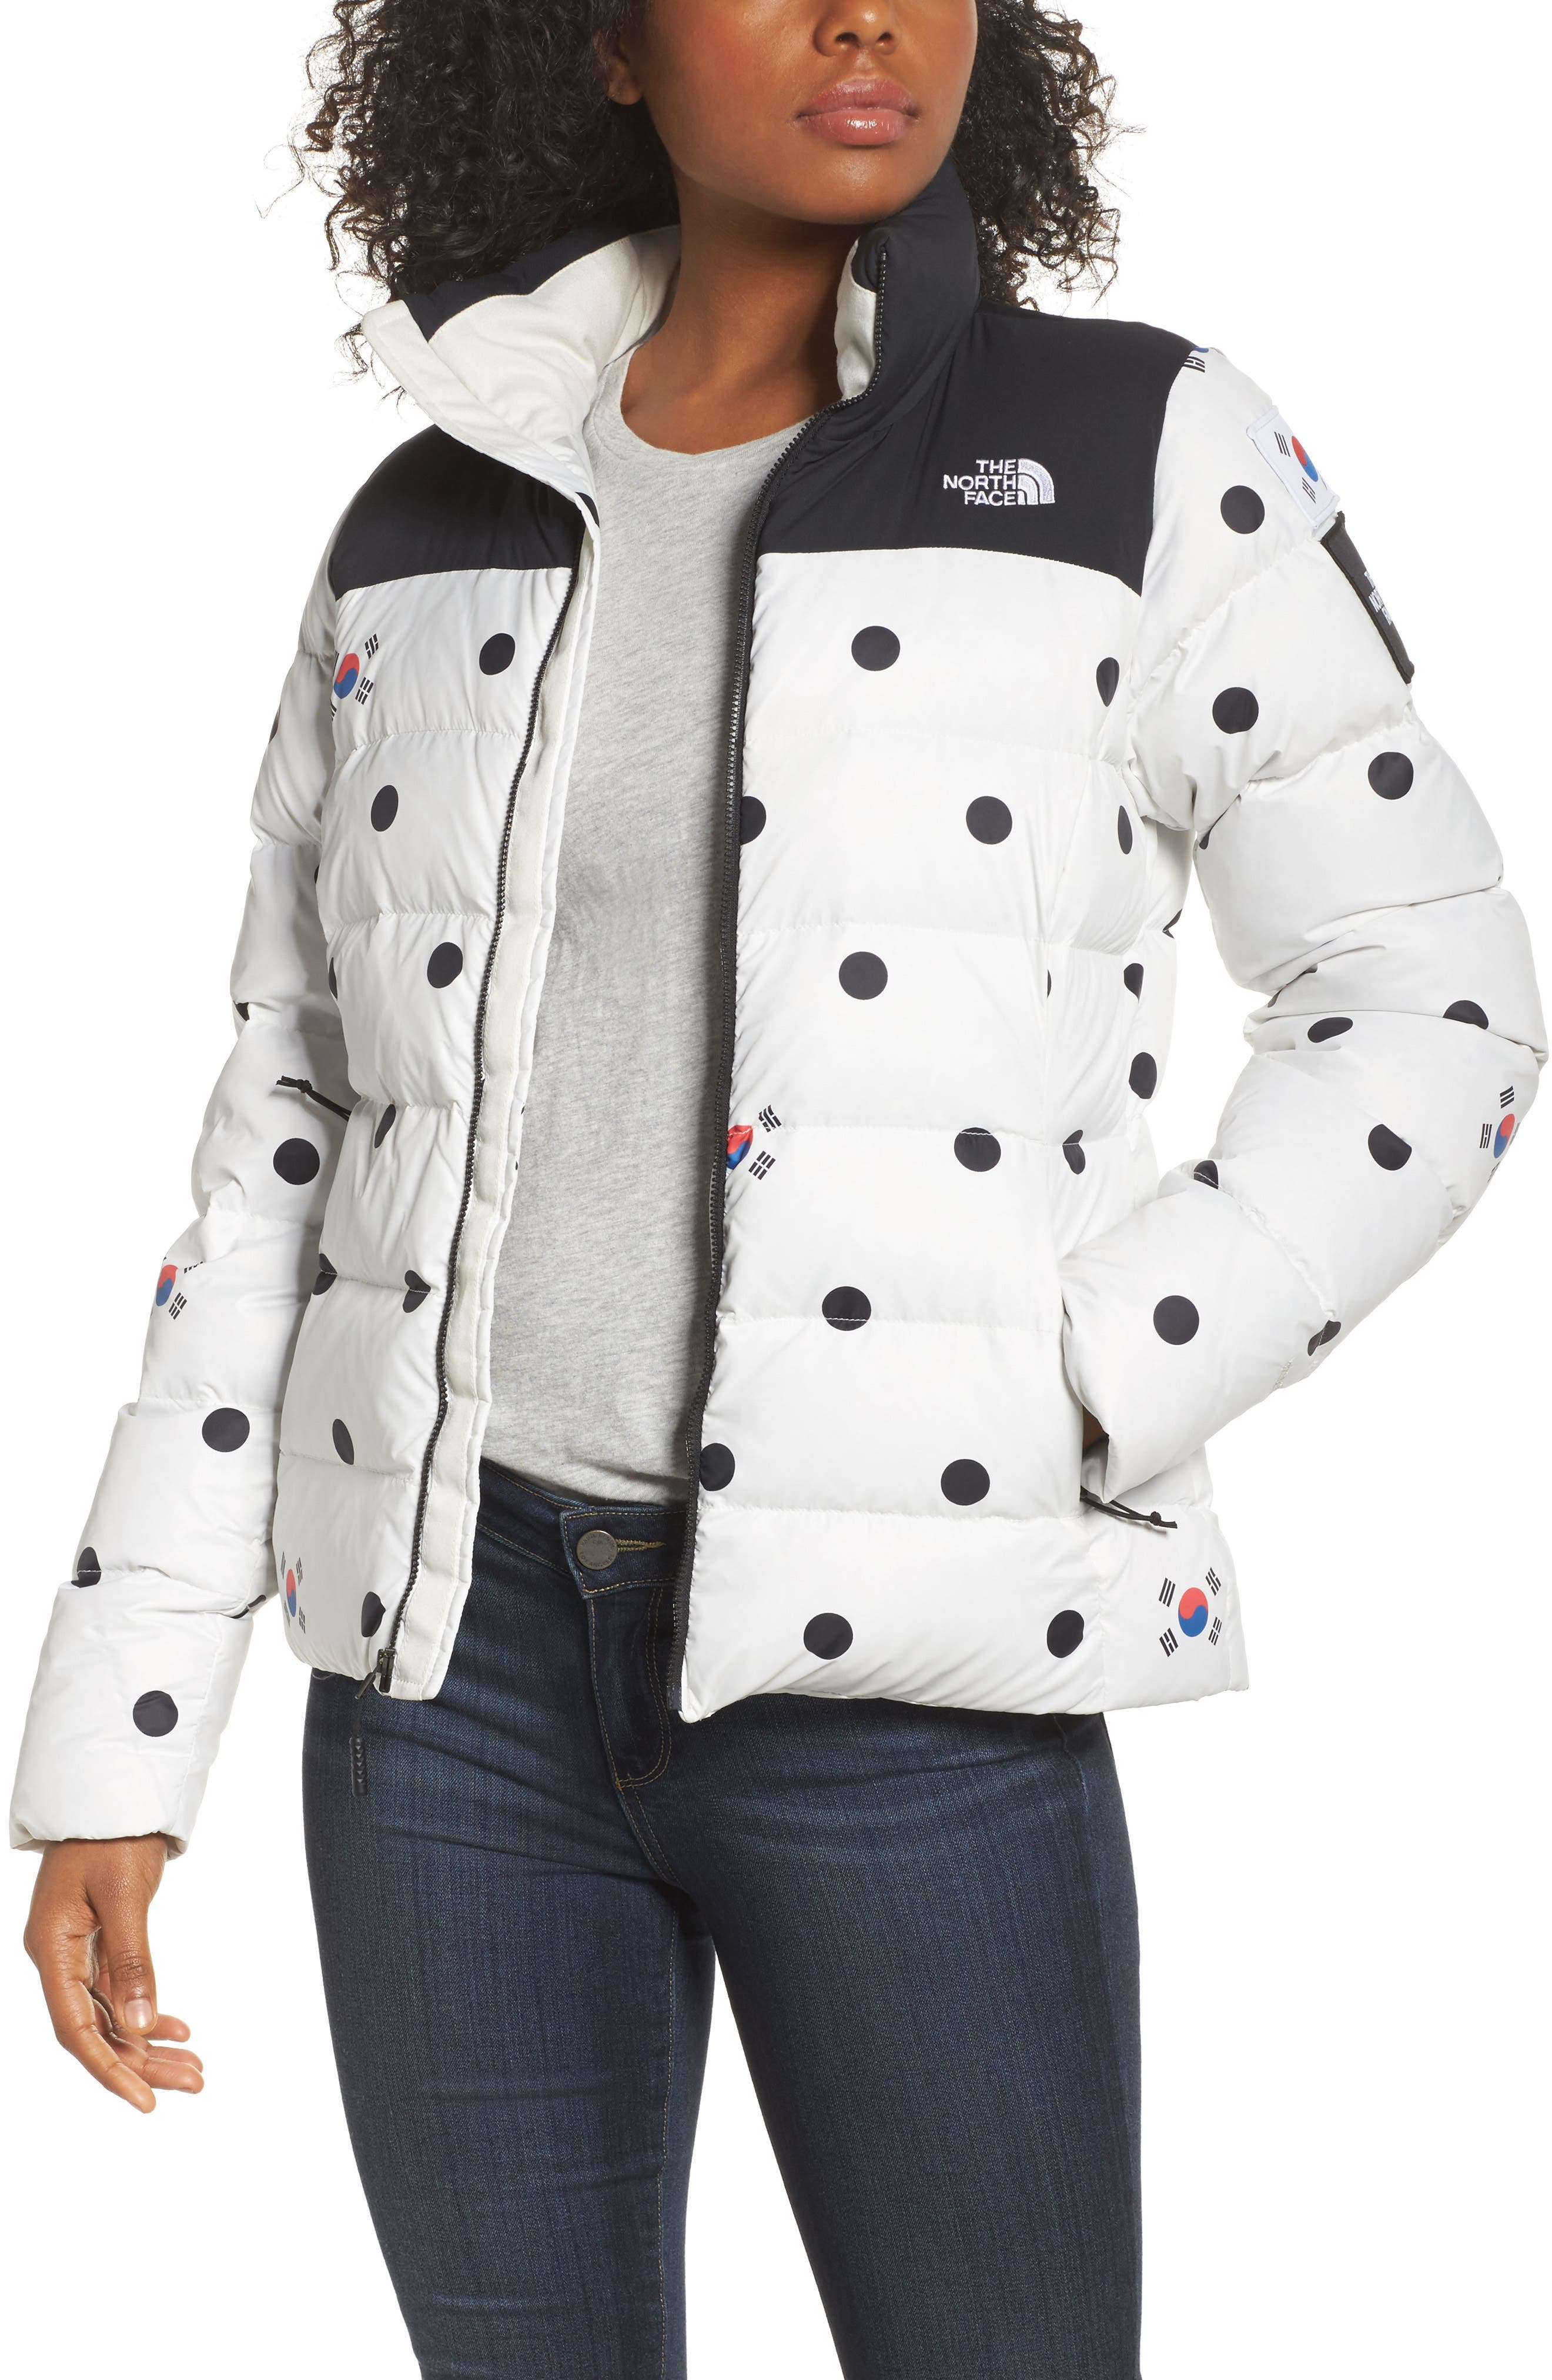 The North Face Outerwear Clothing Accessories